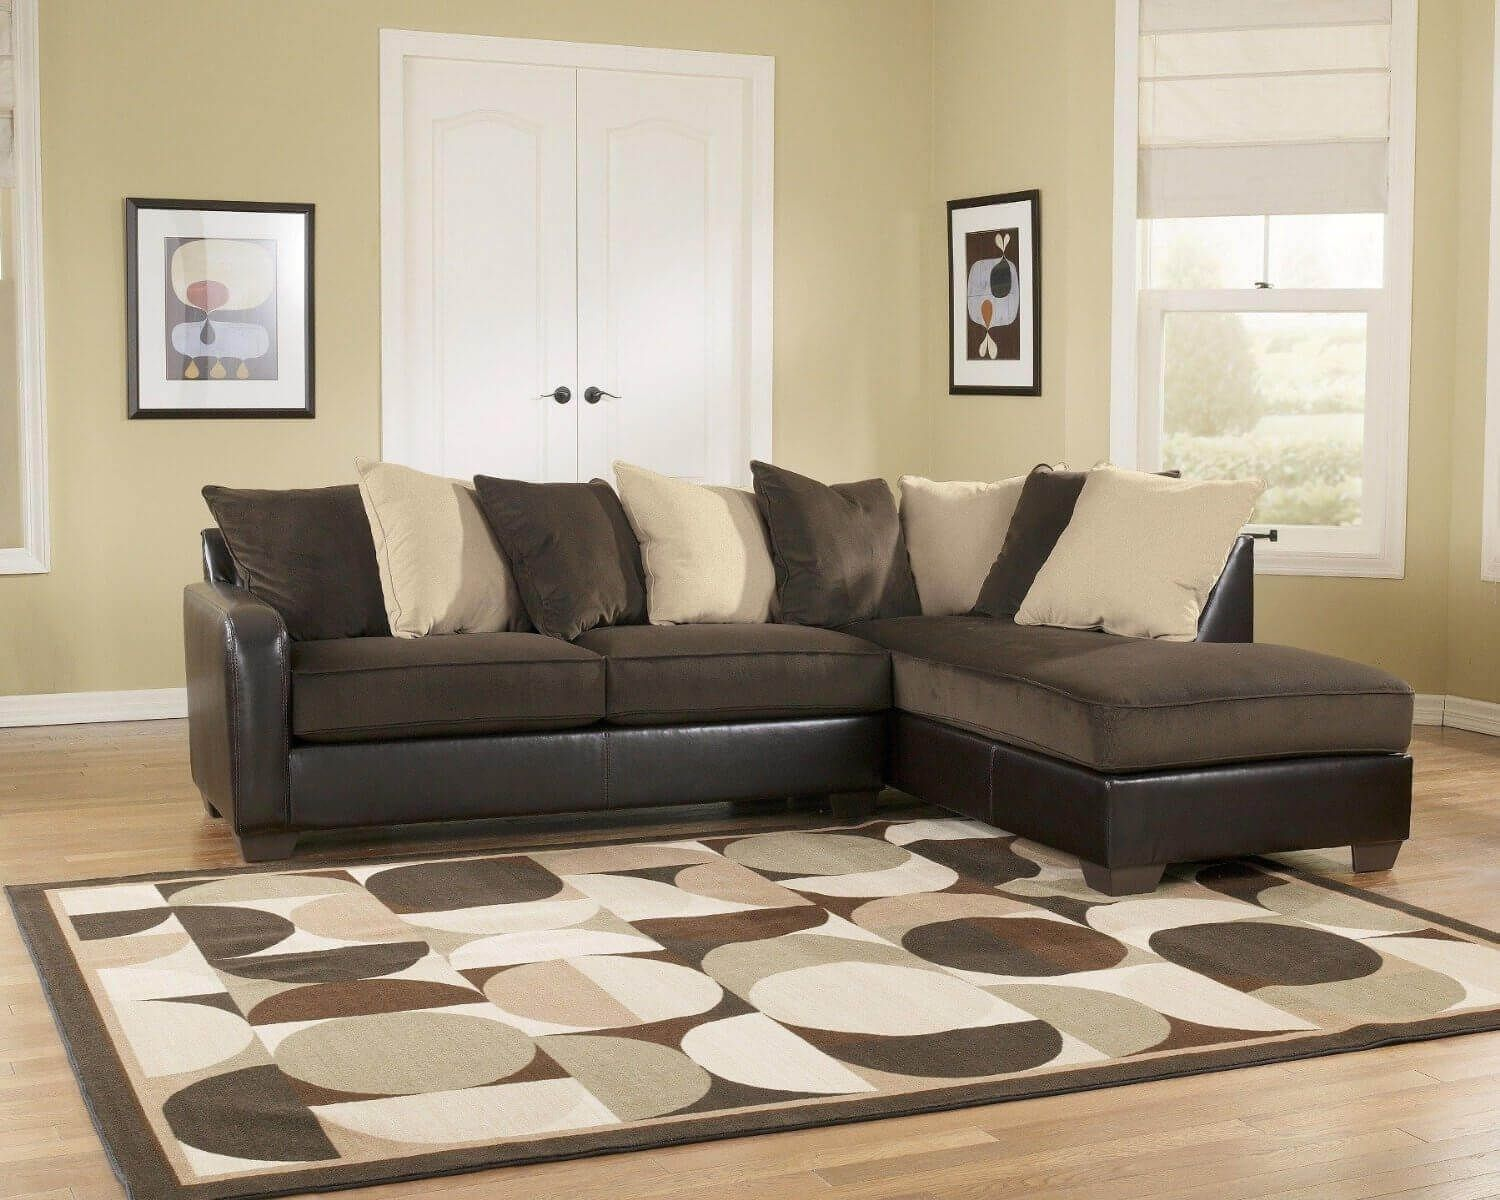 Sectional Couches Under 1000 Sectional Sofa With Chaise Ashley Furniture Sectional Couch Furniture